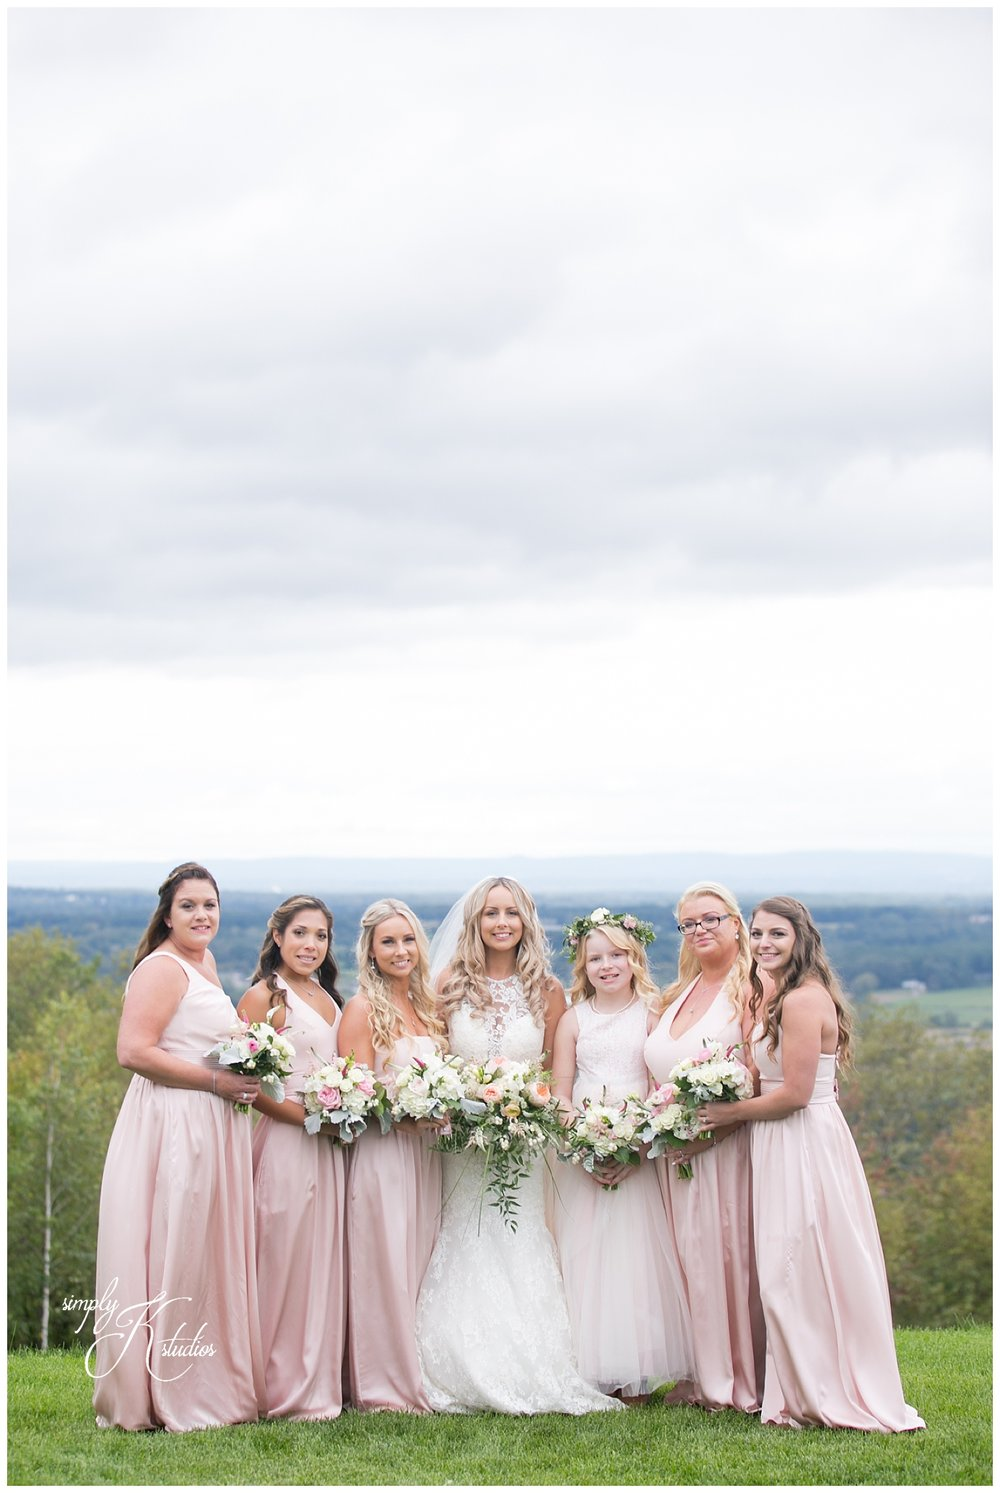 Blush Pink Bridesmaid Dresses.jpg